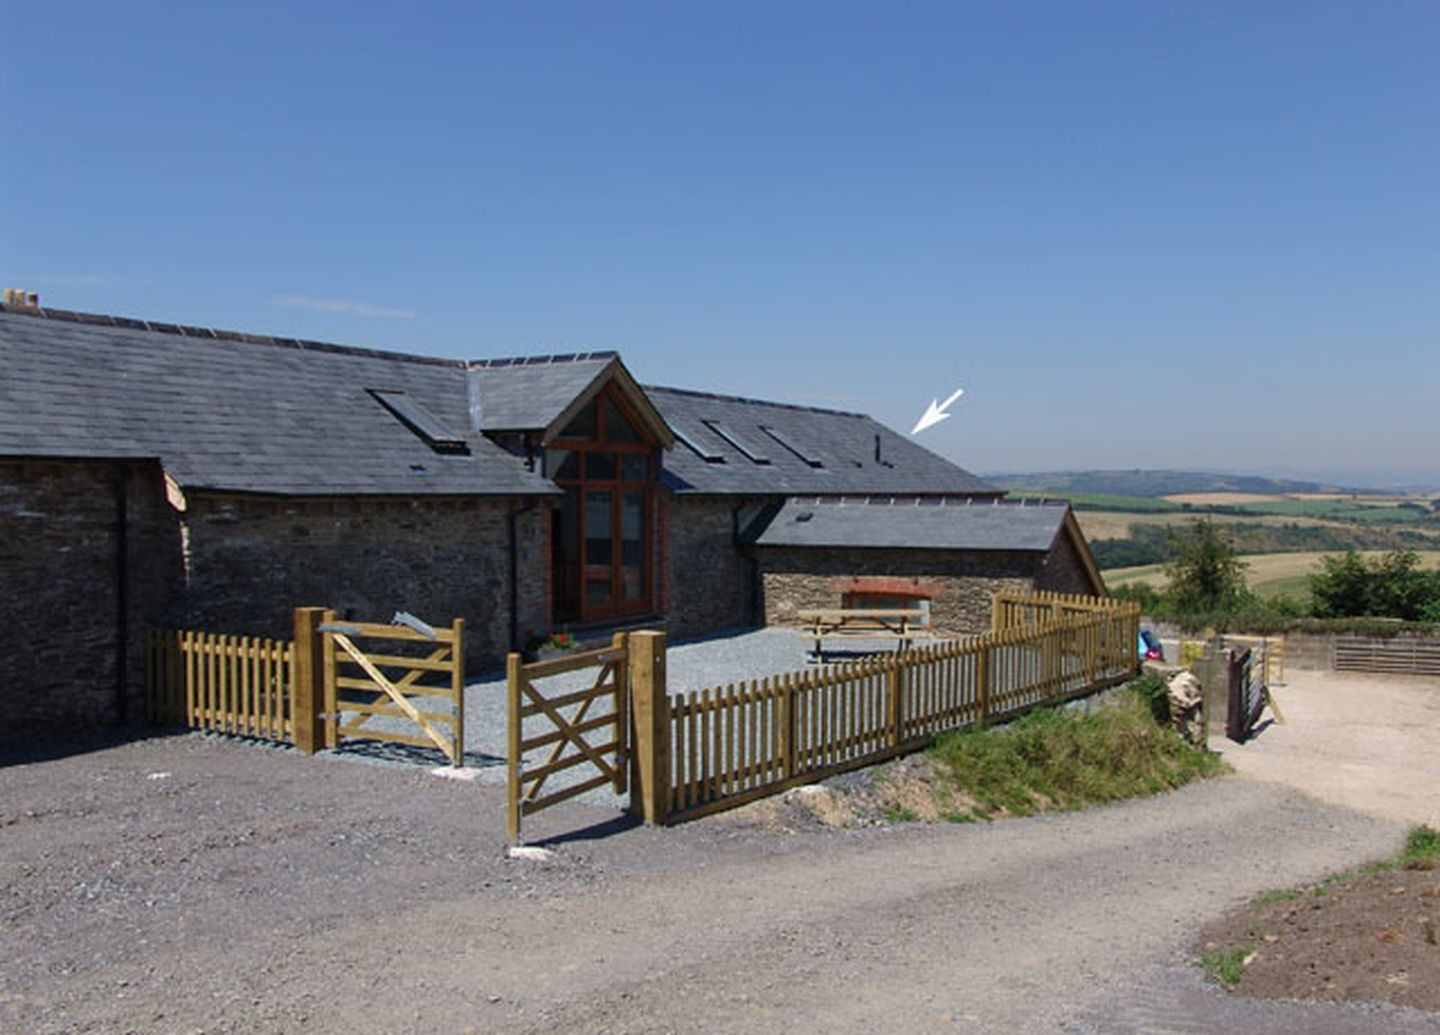 Blackthorn Barn